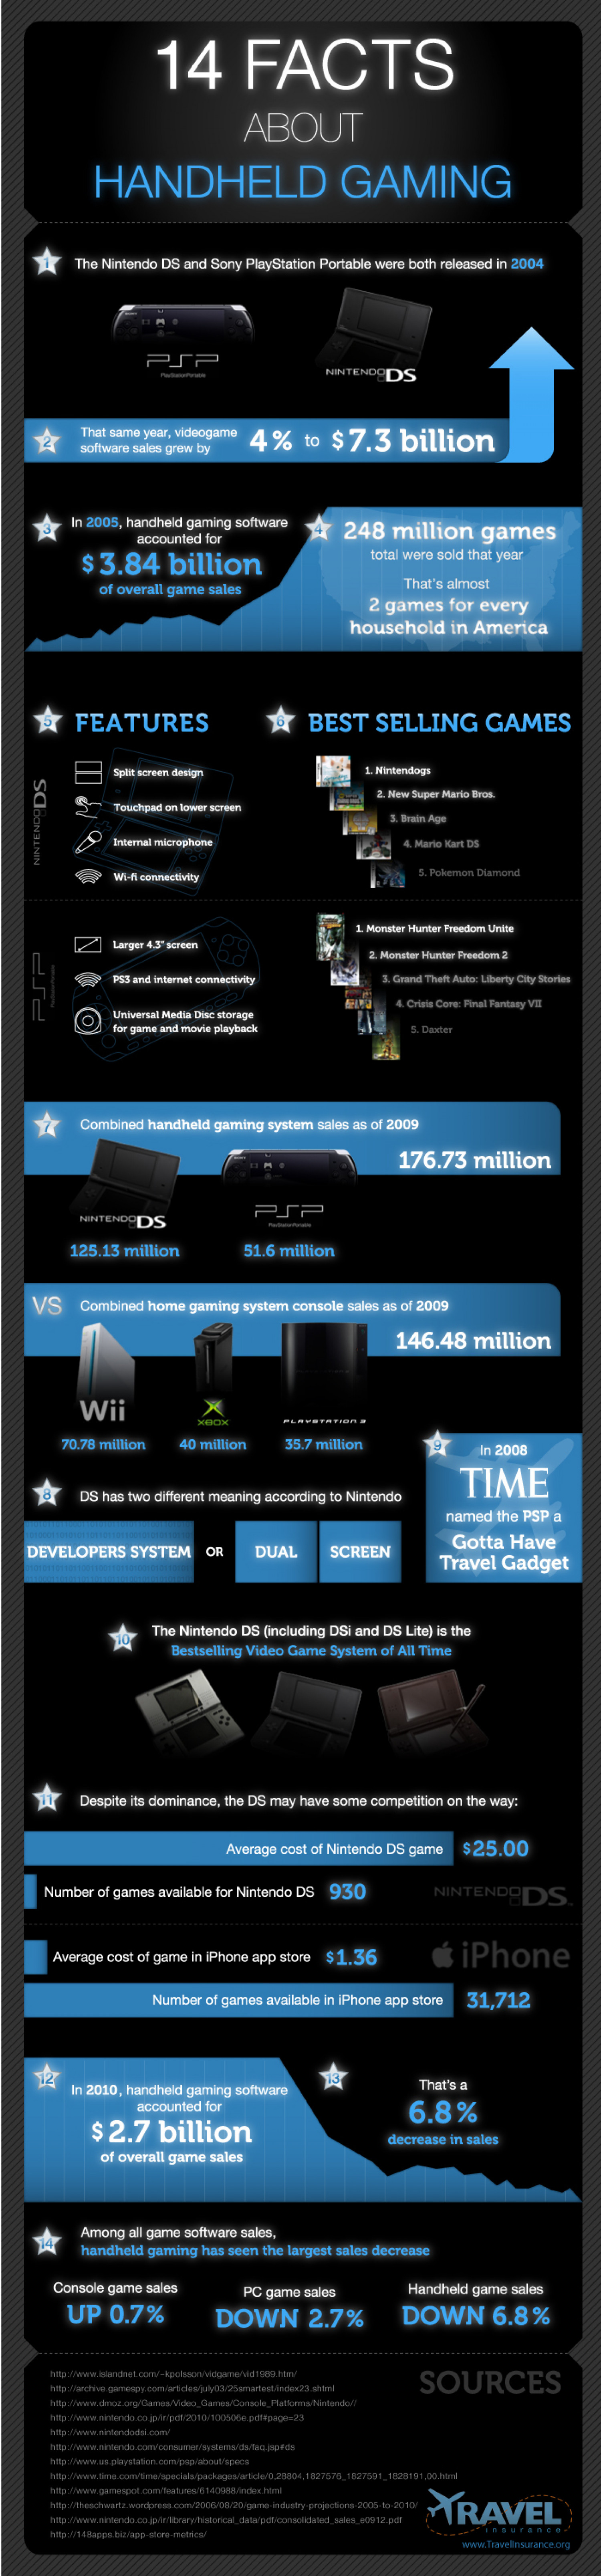 14 Facts about Handheld Gaming  Infographic